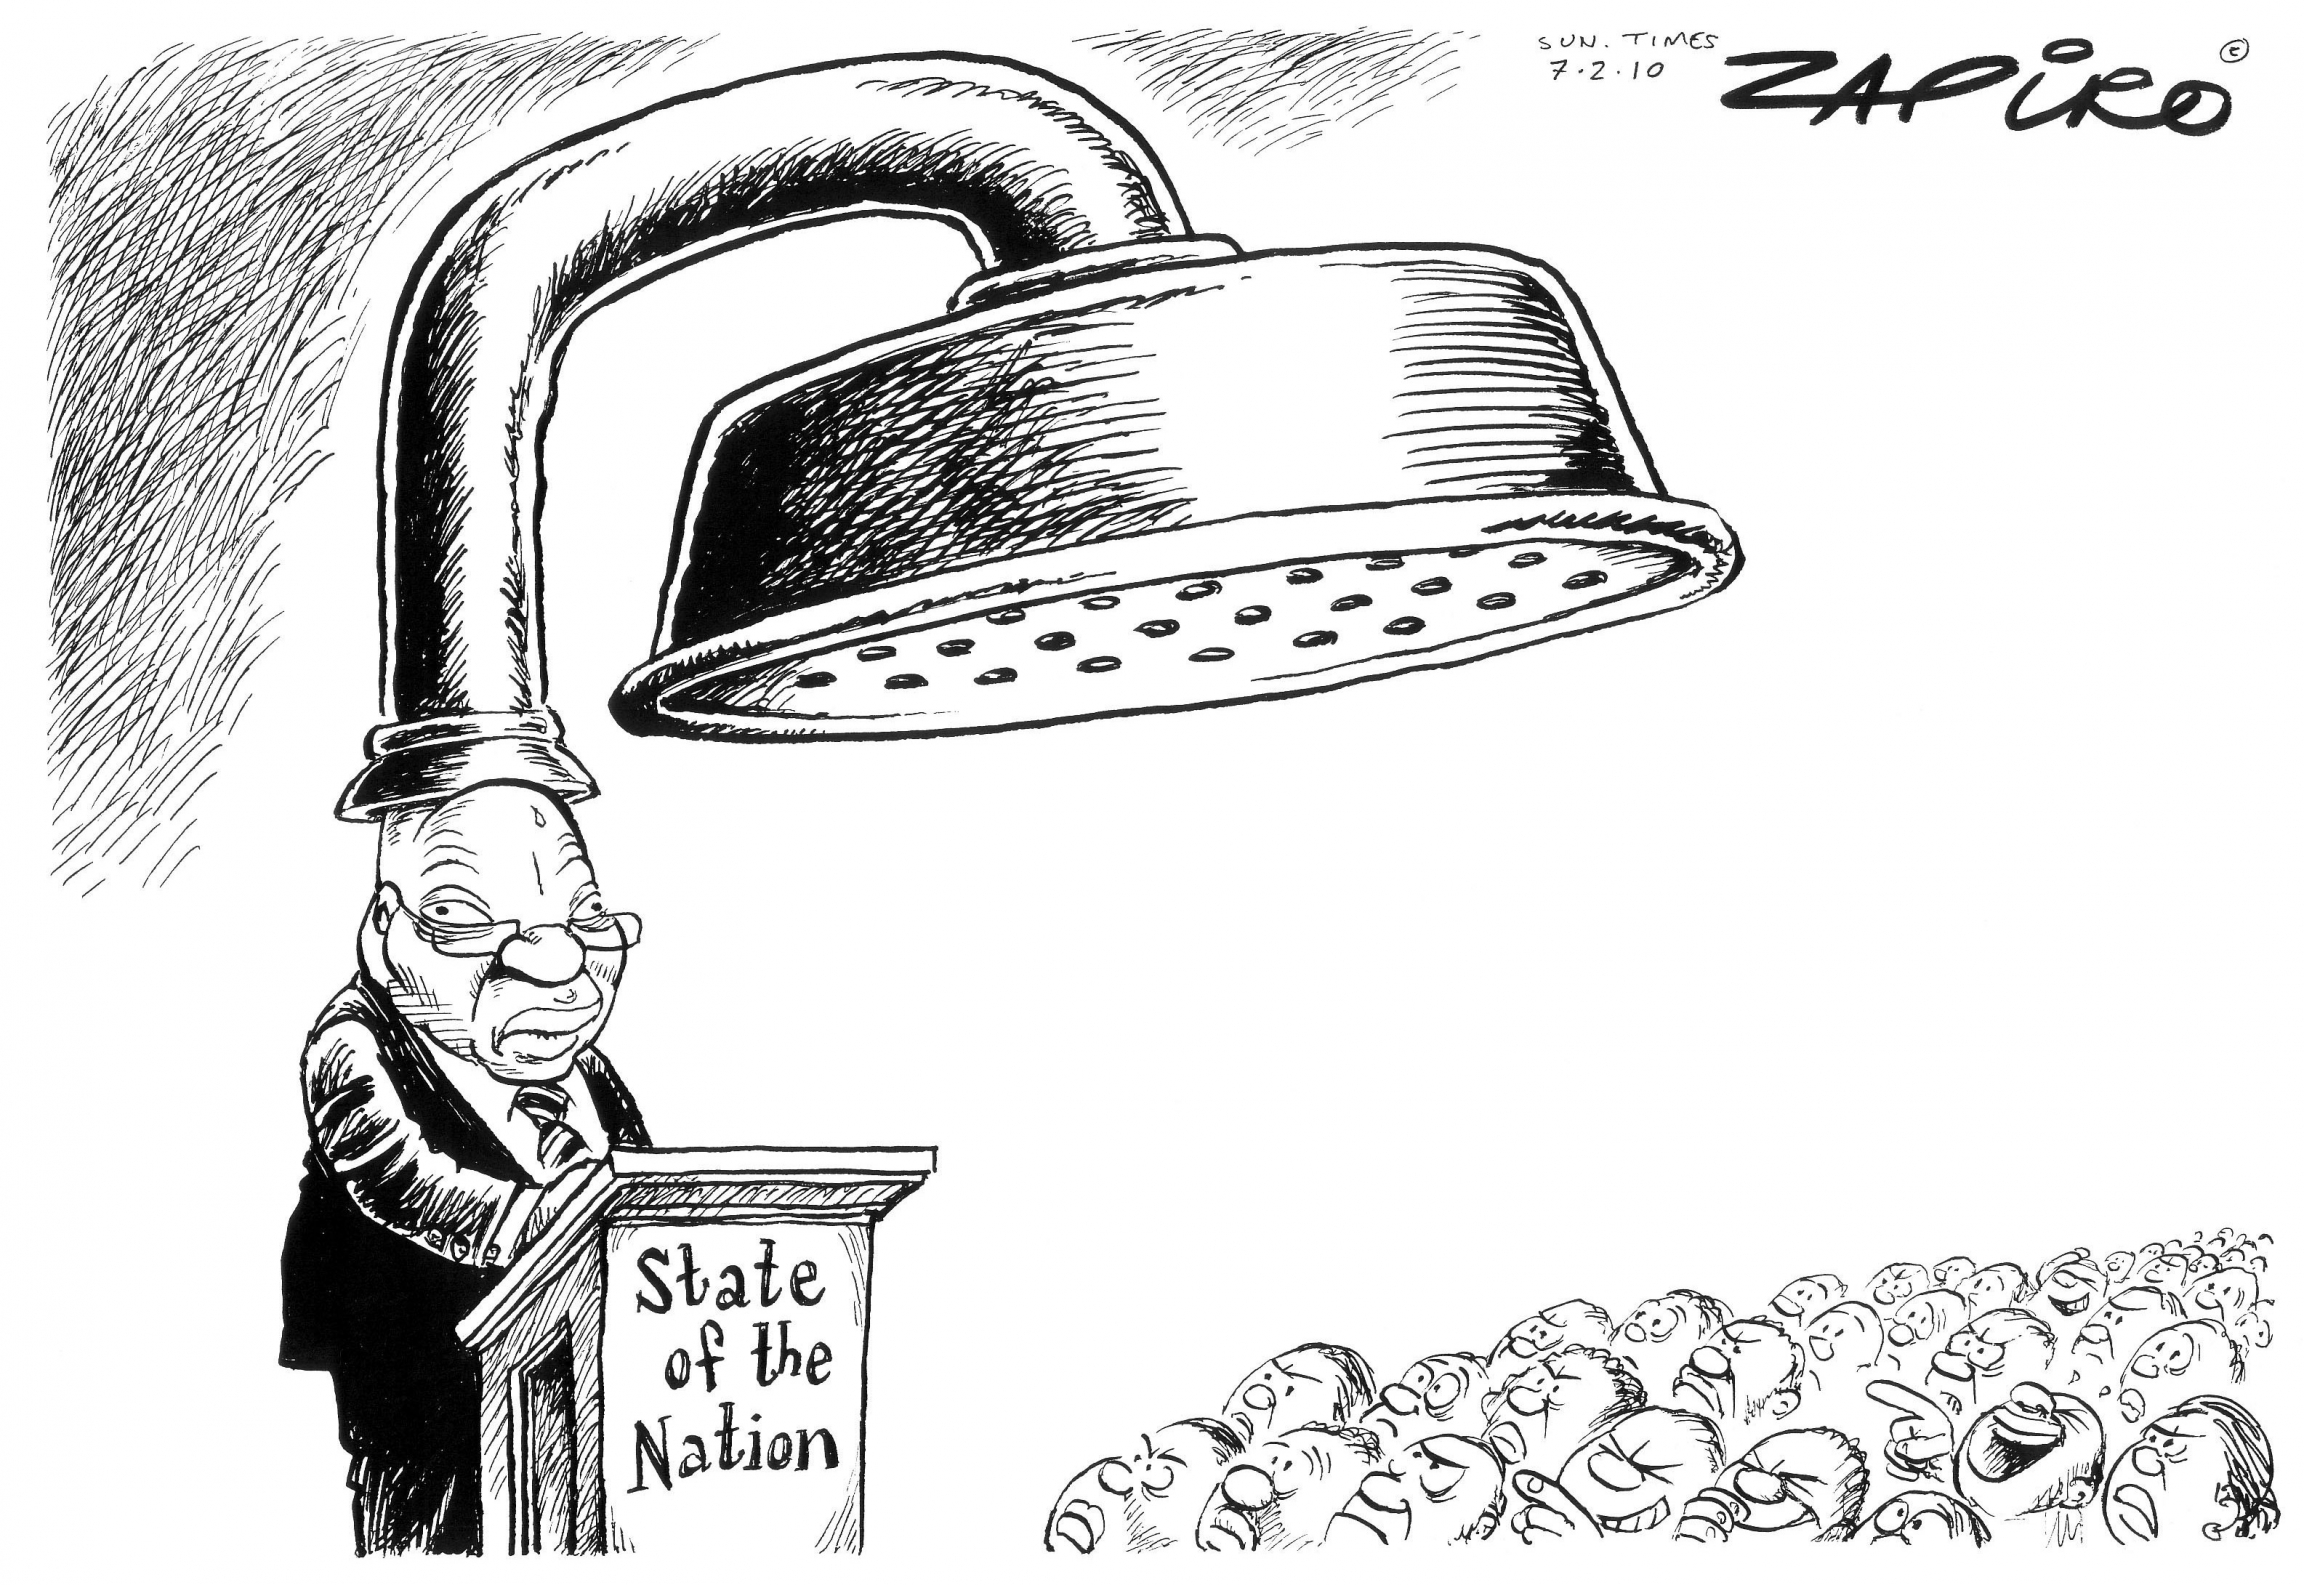 Zapiro cartoon of Jacob Zuma addressing the South African parliament not knowing there's a shower on his head.